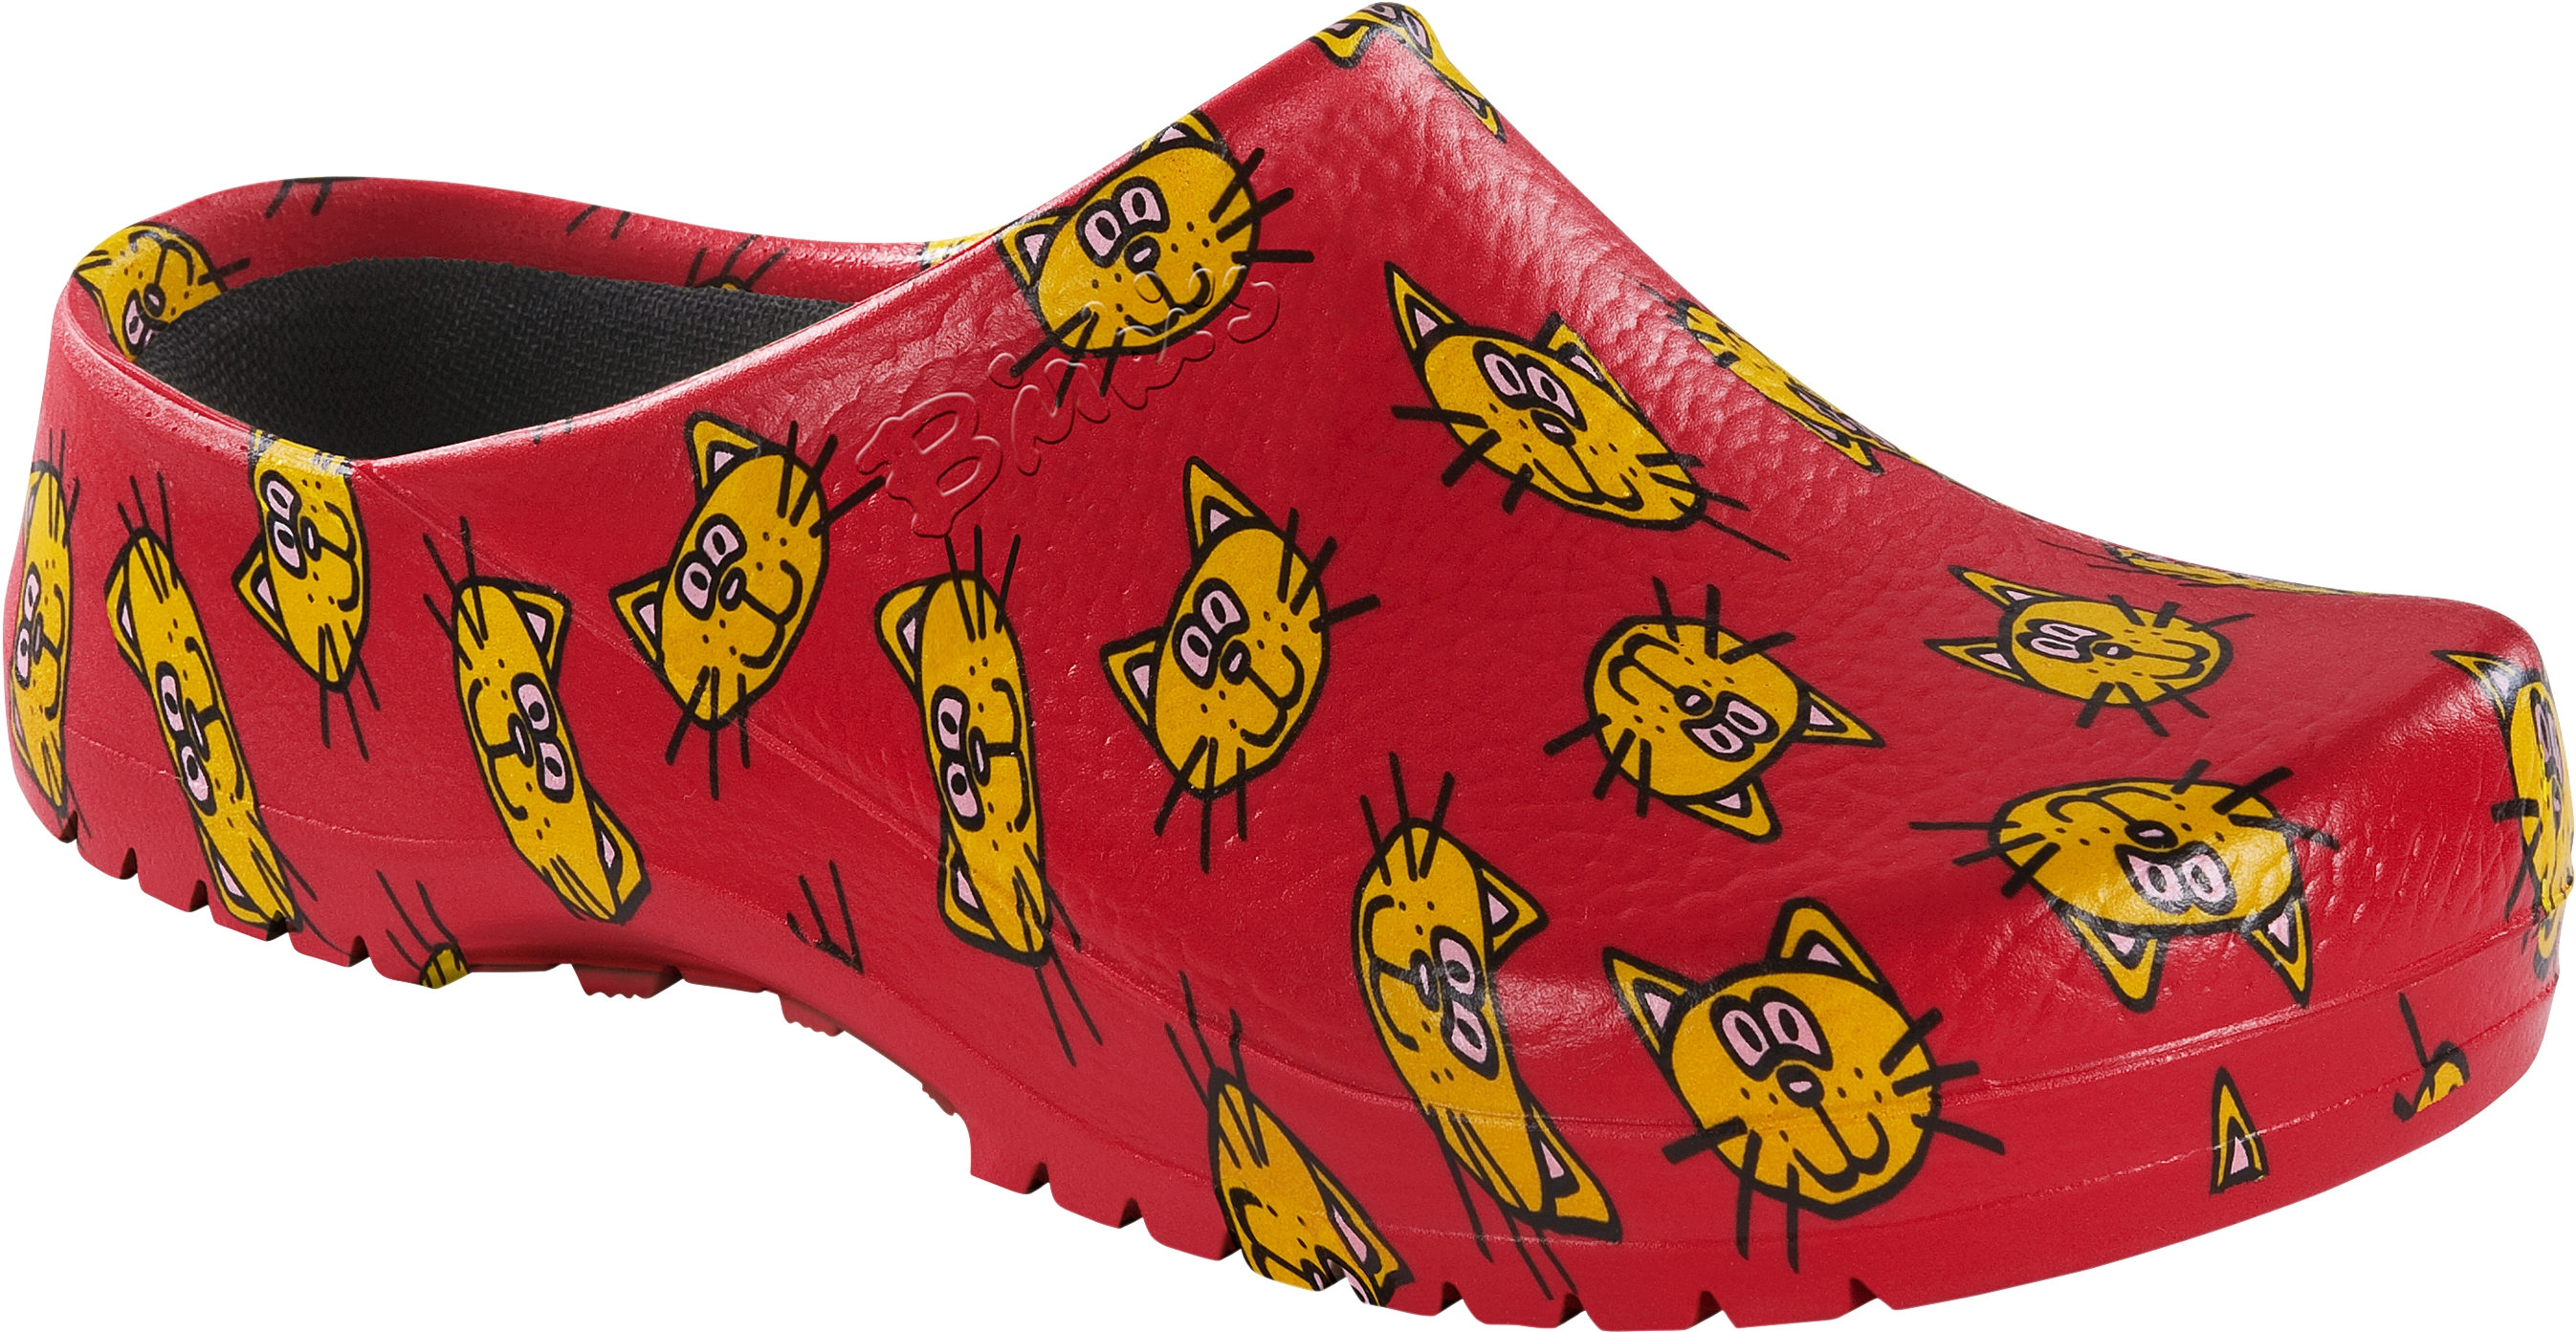 61c5641daa5478 Birkenstock Professional Clog Super Birki cat red Gr. 35 - 43 068631 ...